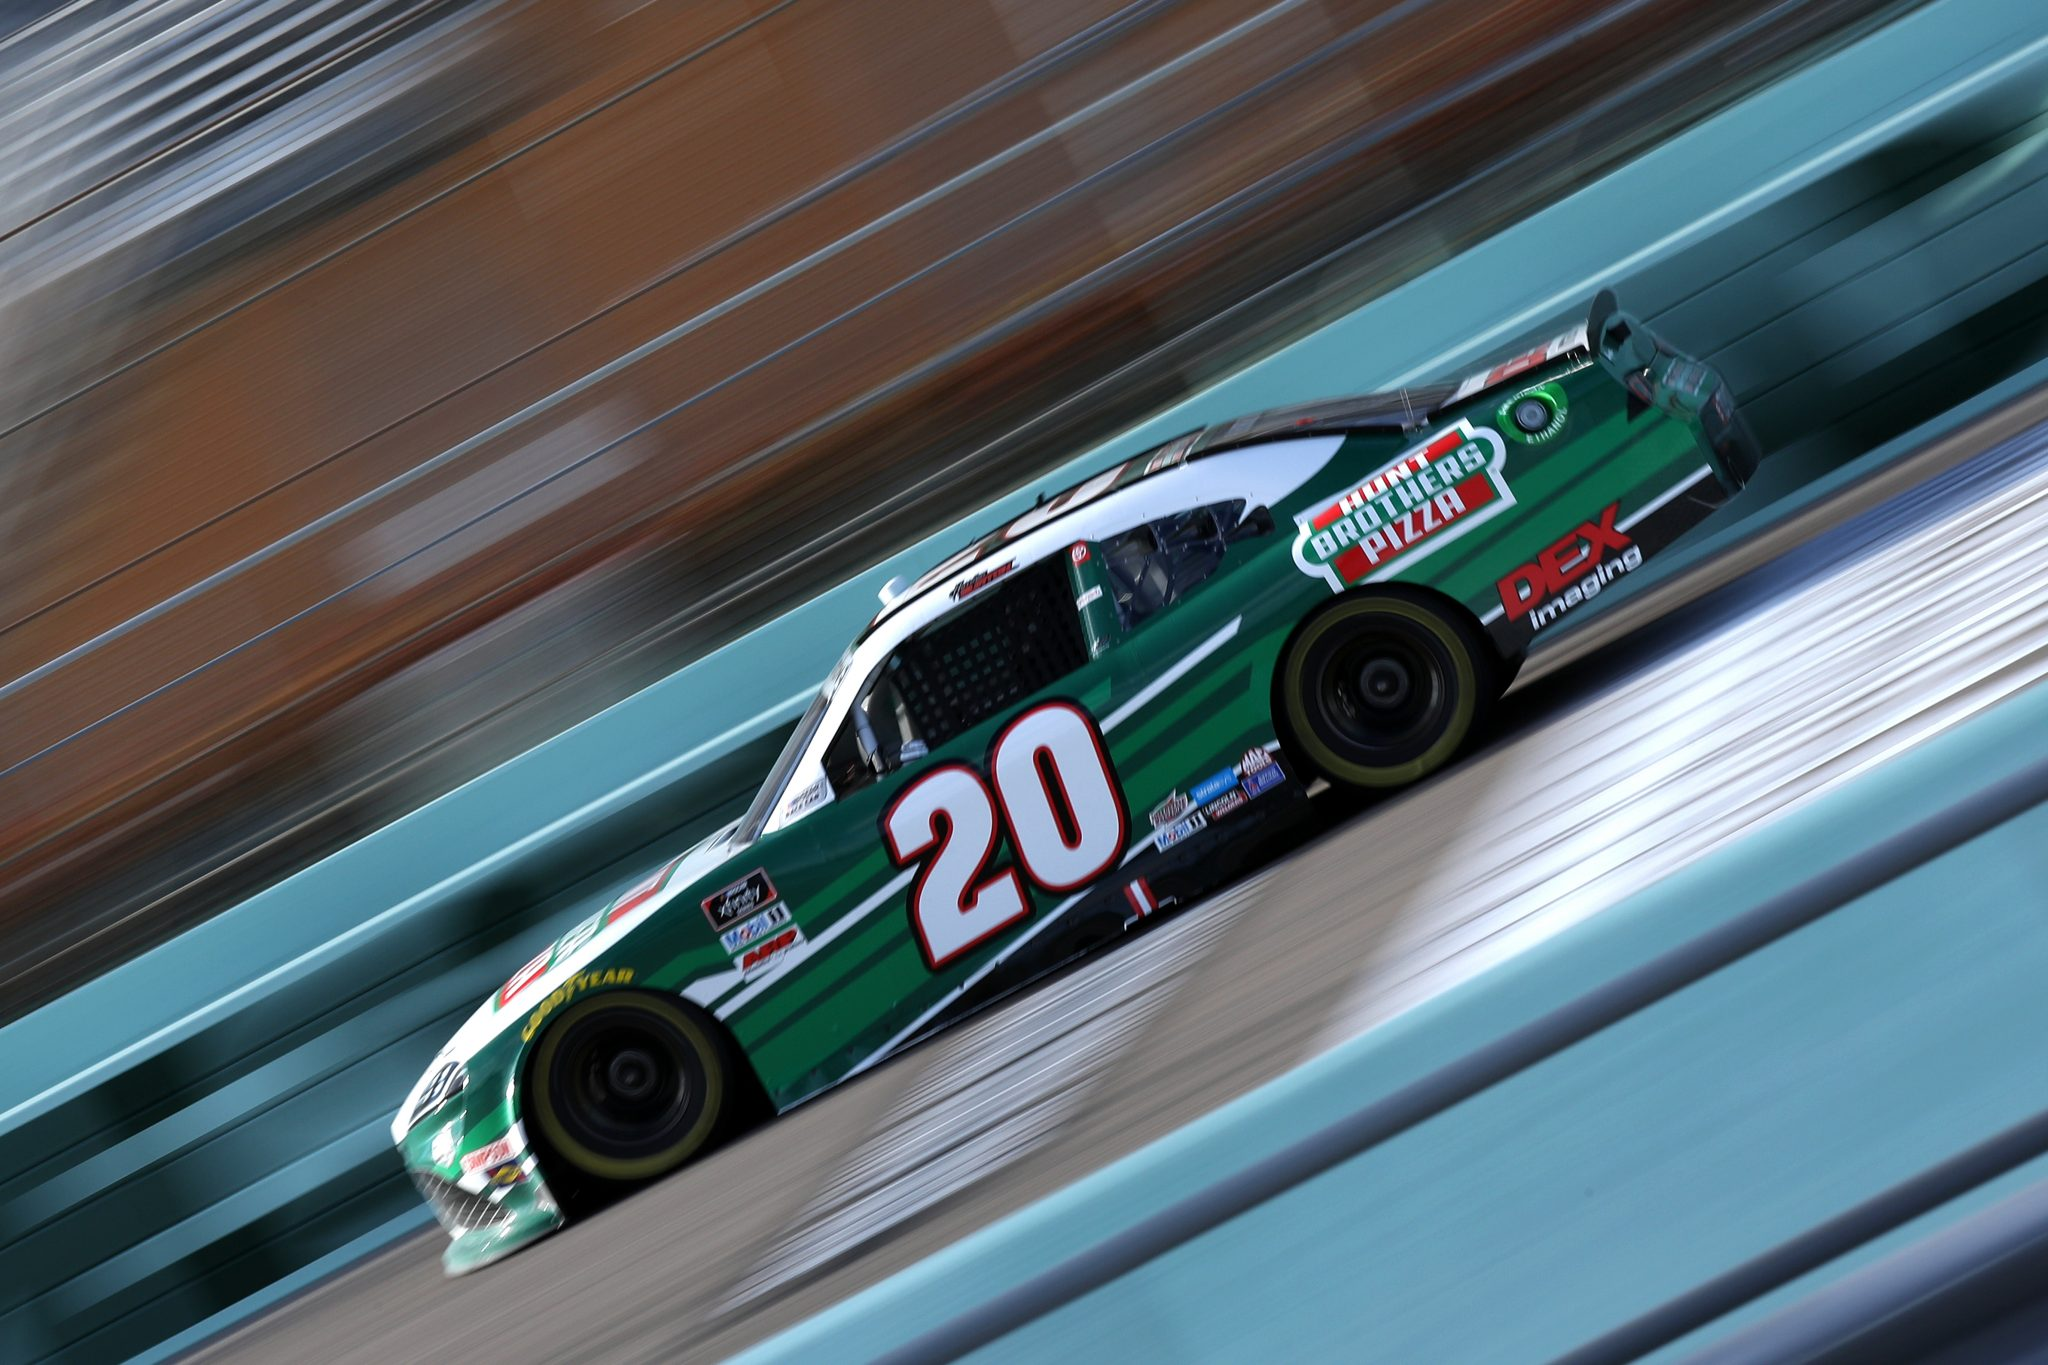 HOMESTEAD, FLORIDA - FEBRUARY 27: Harrison Burton, driver of the #20 Hunt Brothers Pizza/DEX Imaging Toyota, drives during the NASCAR Xfinity Series Contender Boats 250 at Homestead-Miami Speedway on February 27, 2021 in Homestead, Florida. (Photo by Sean Gardner/Getty Images) | Getty Images